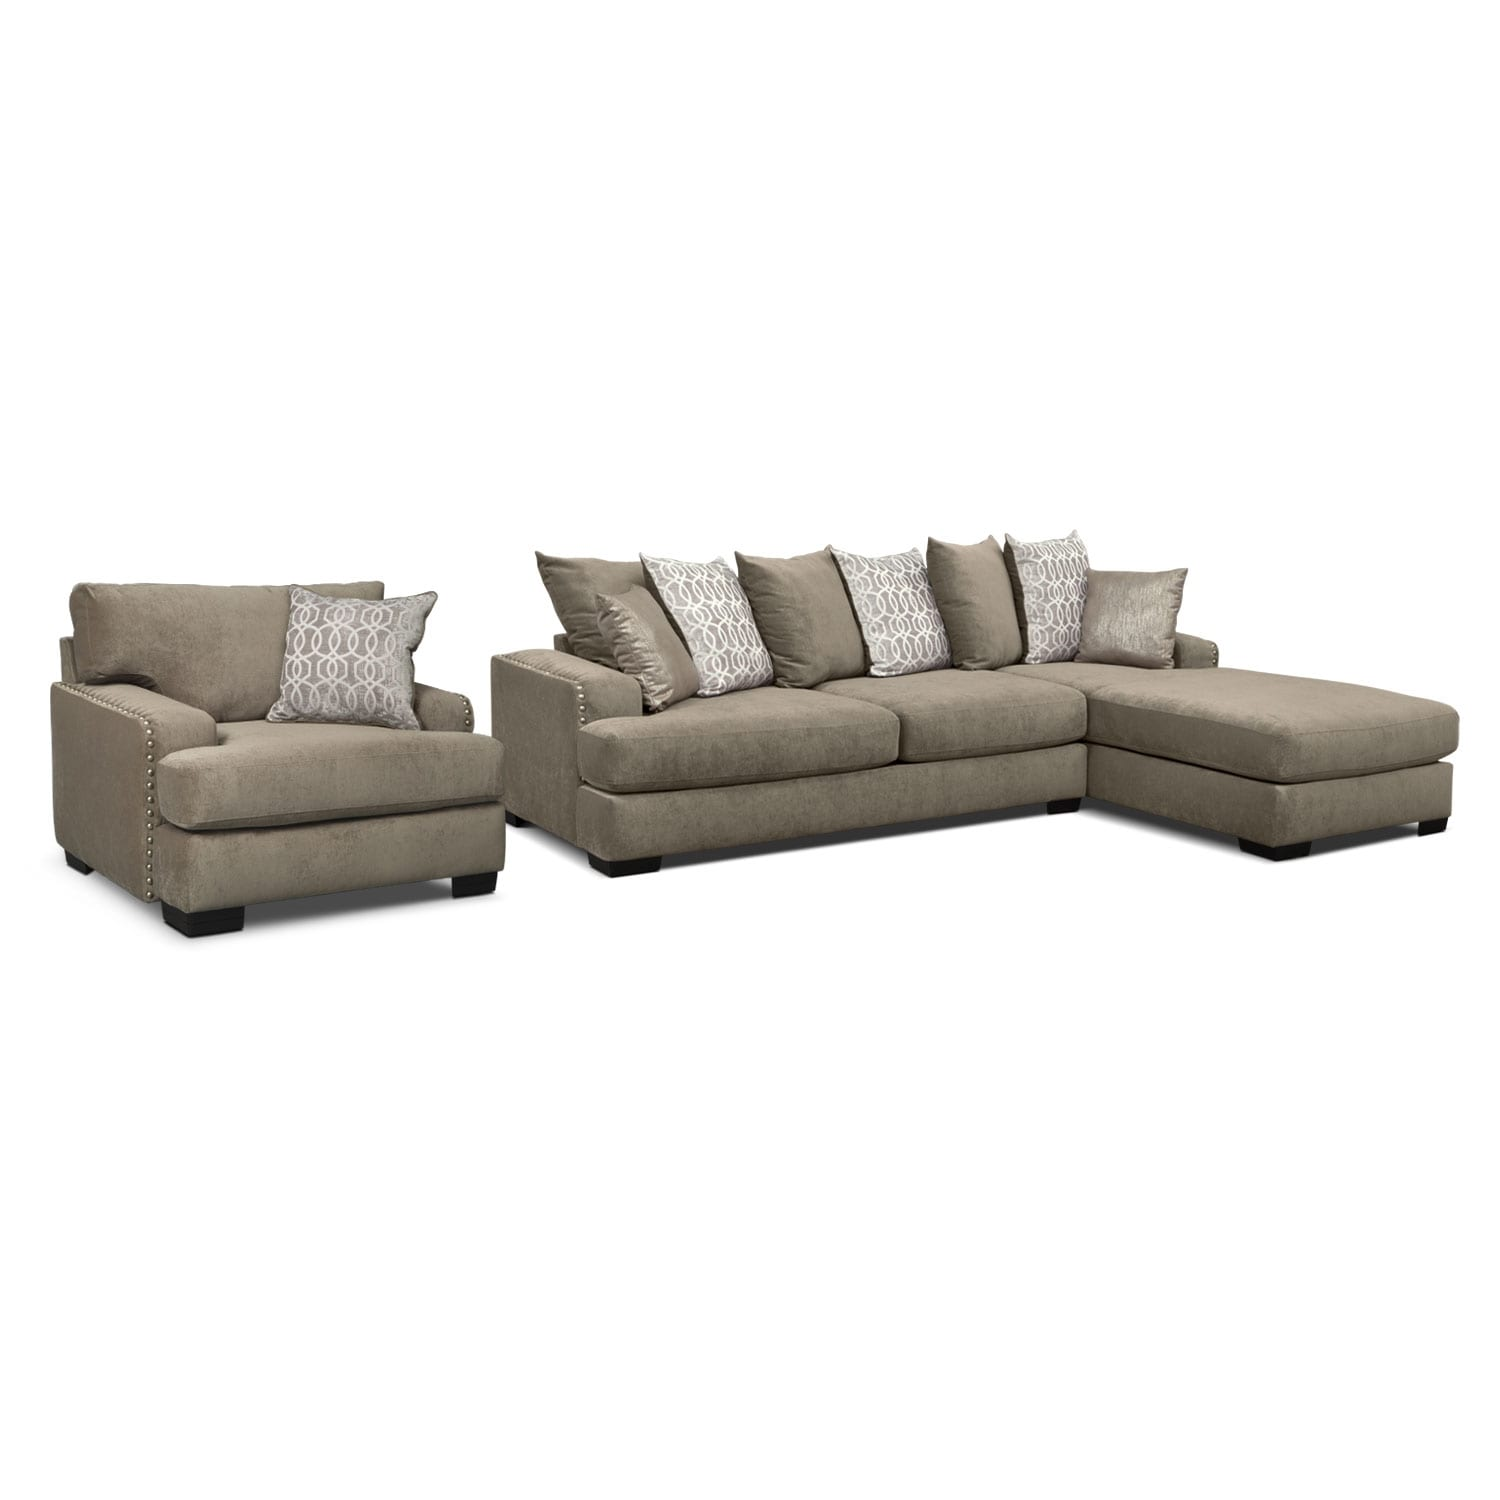 Tempo 2Piece Sectional with RightFacing Chaise and Chair